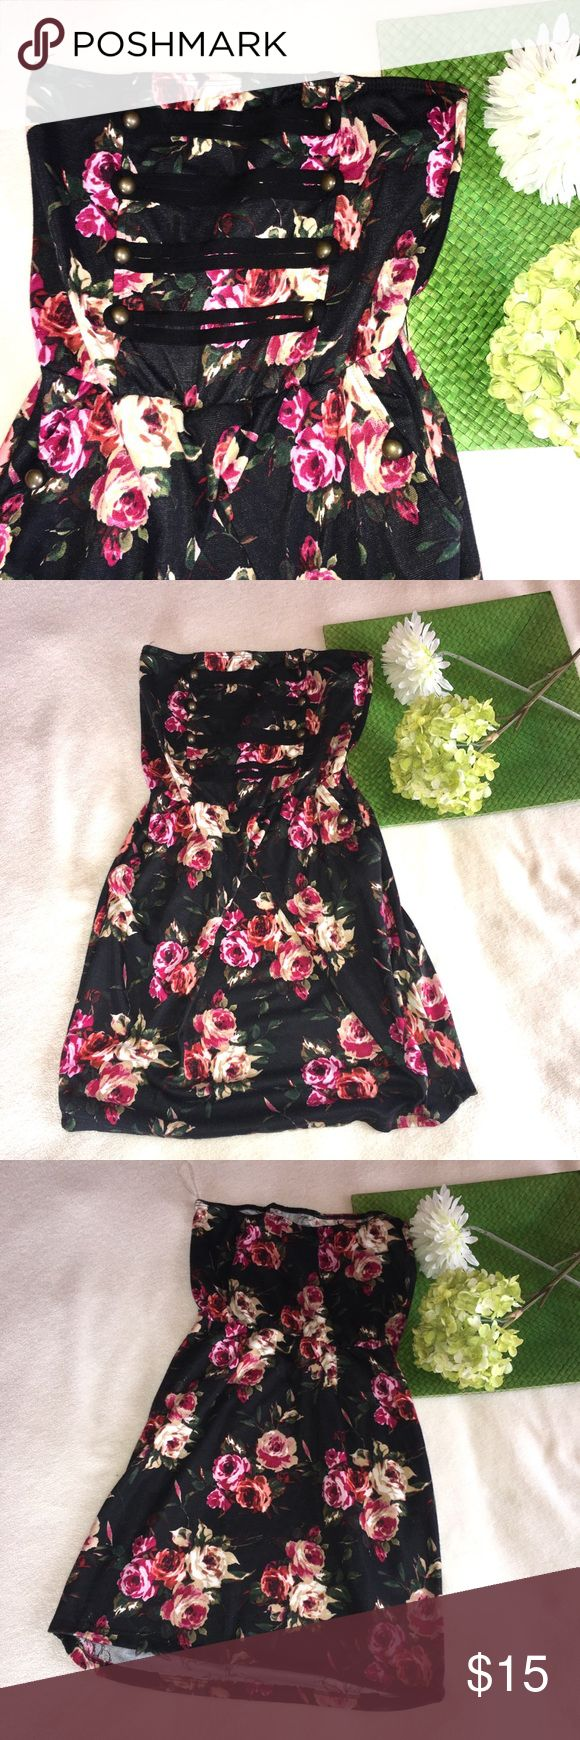 Floral bodycon dress with pockets All offers considered! Wet Seal Dresses Mini